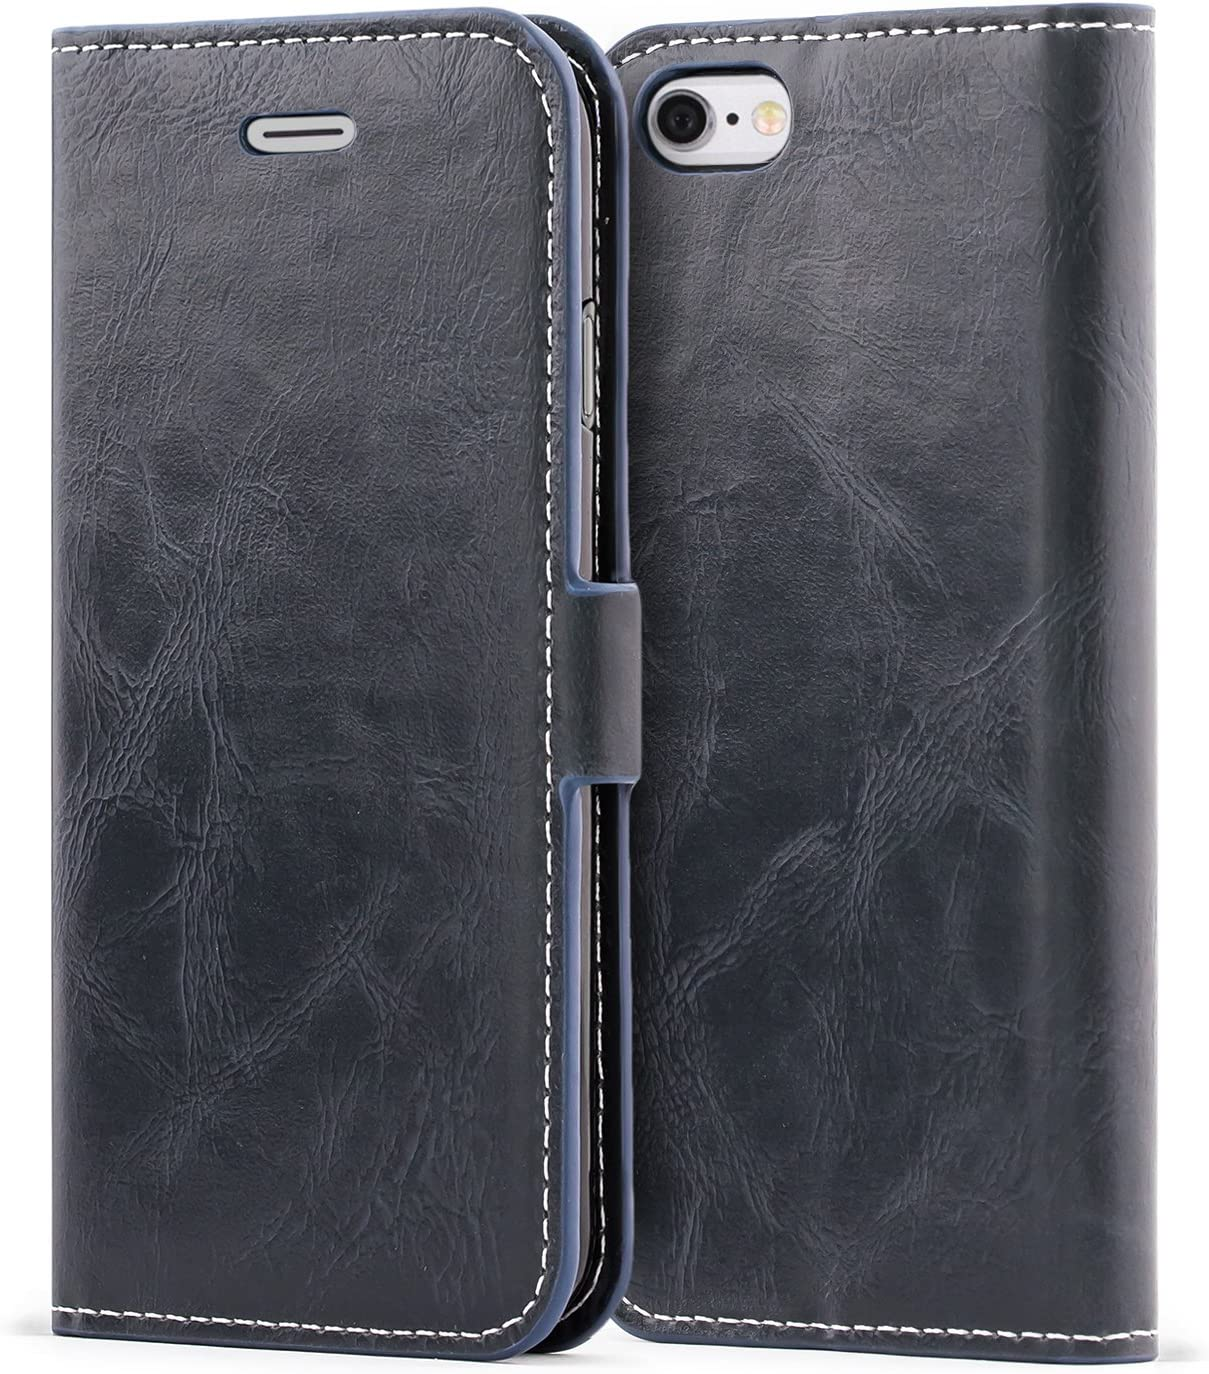 Mulbess iPhone 6s Wallet Case, Flip Leather Phone Case with Kickstand and Card Holder for iPhone 6 / 6s (4.7 inch) Cover, Navy Blue